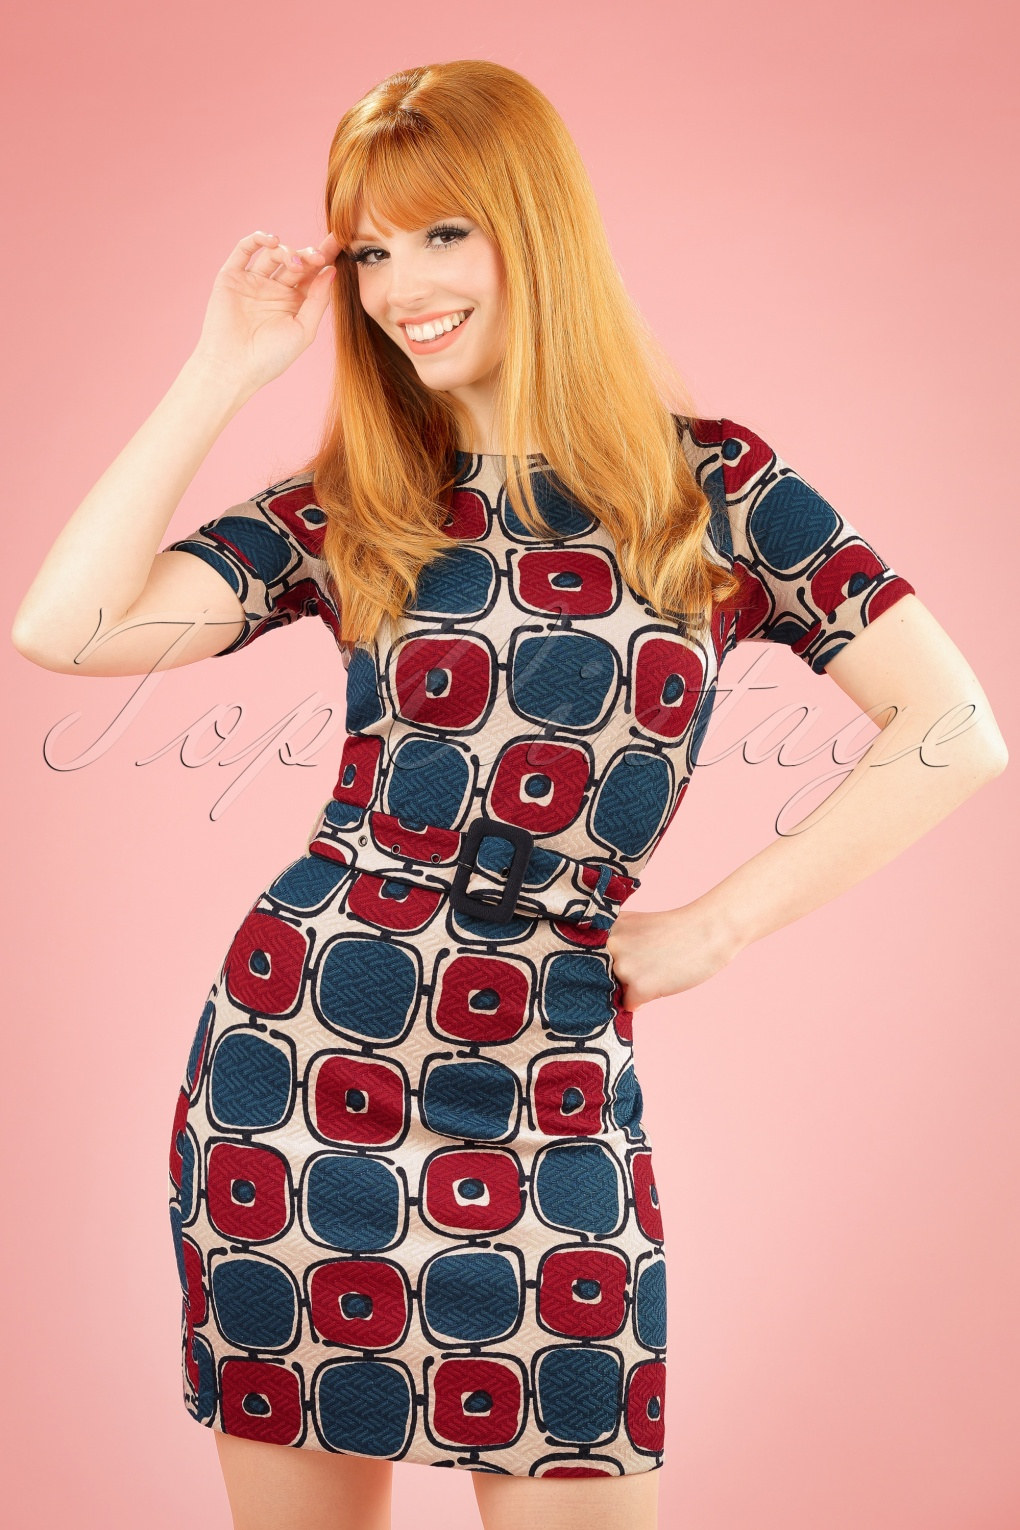 1960s Style Dresses- Retro Inspired Fashion 60s Maes Solide Dress in Cream Blue and Wine £26.46 AT vintagedancer.com